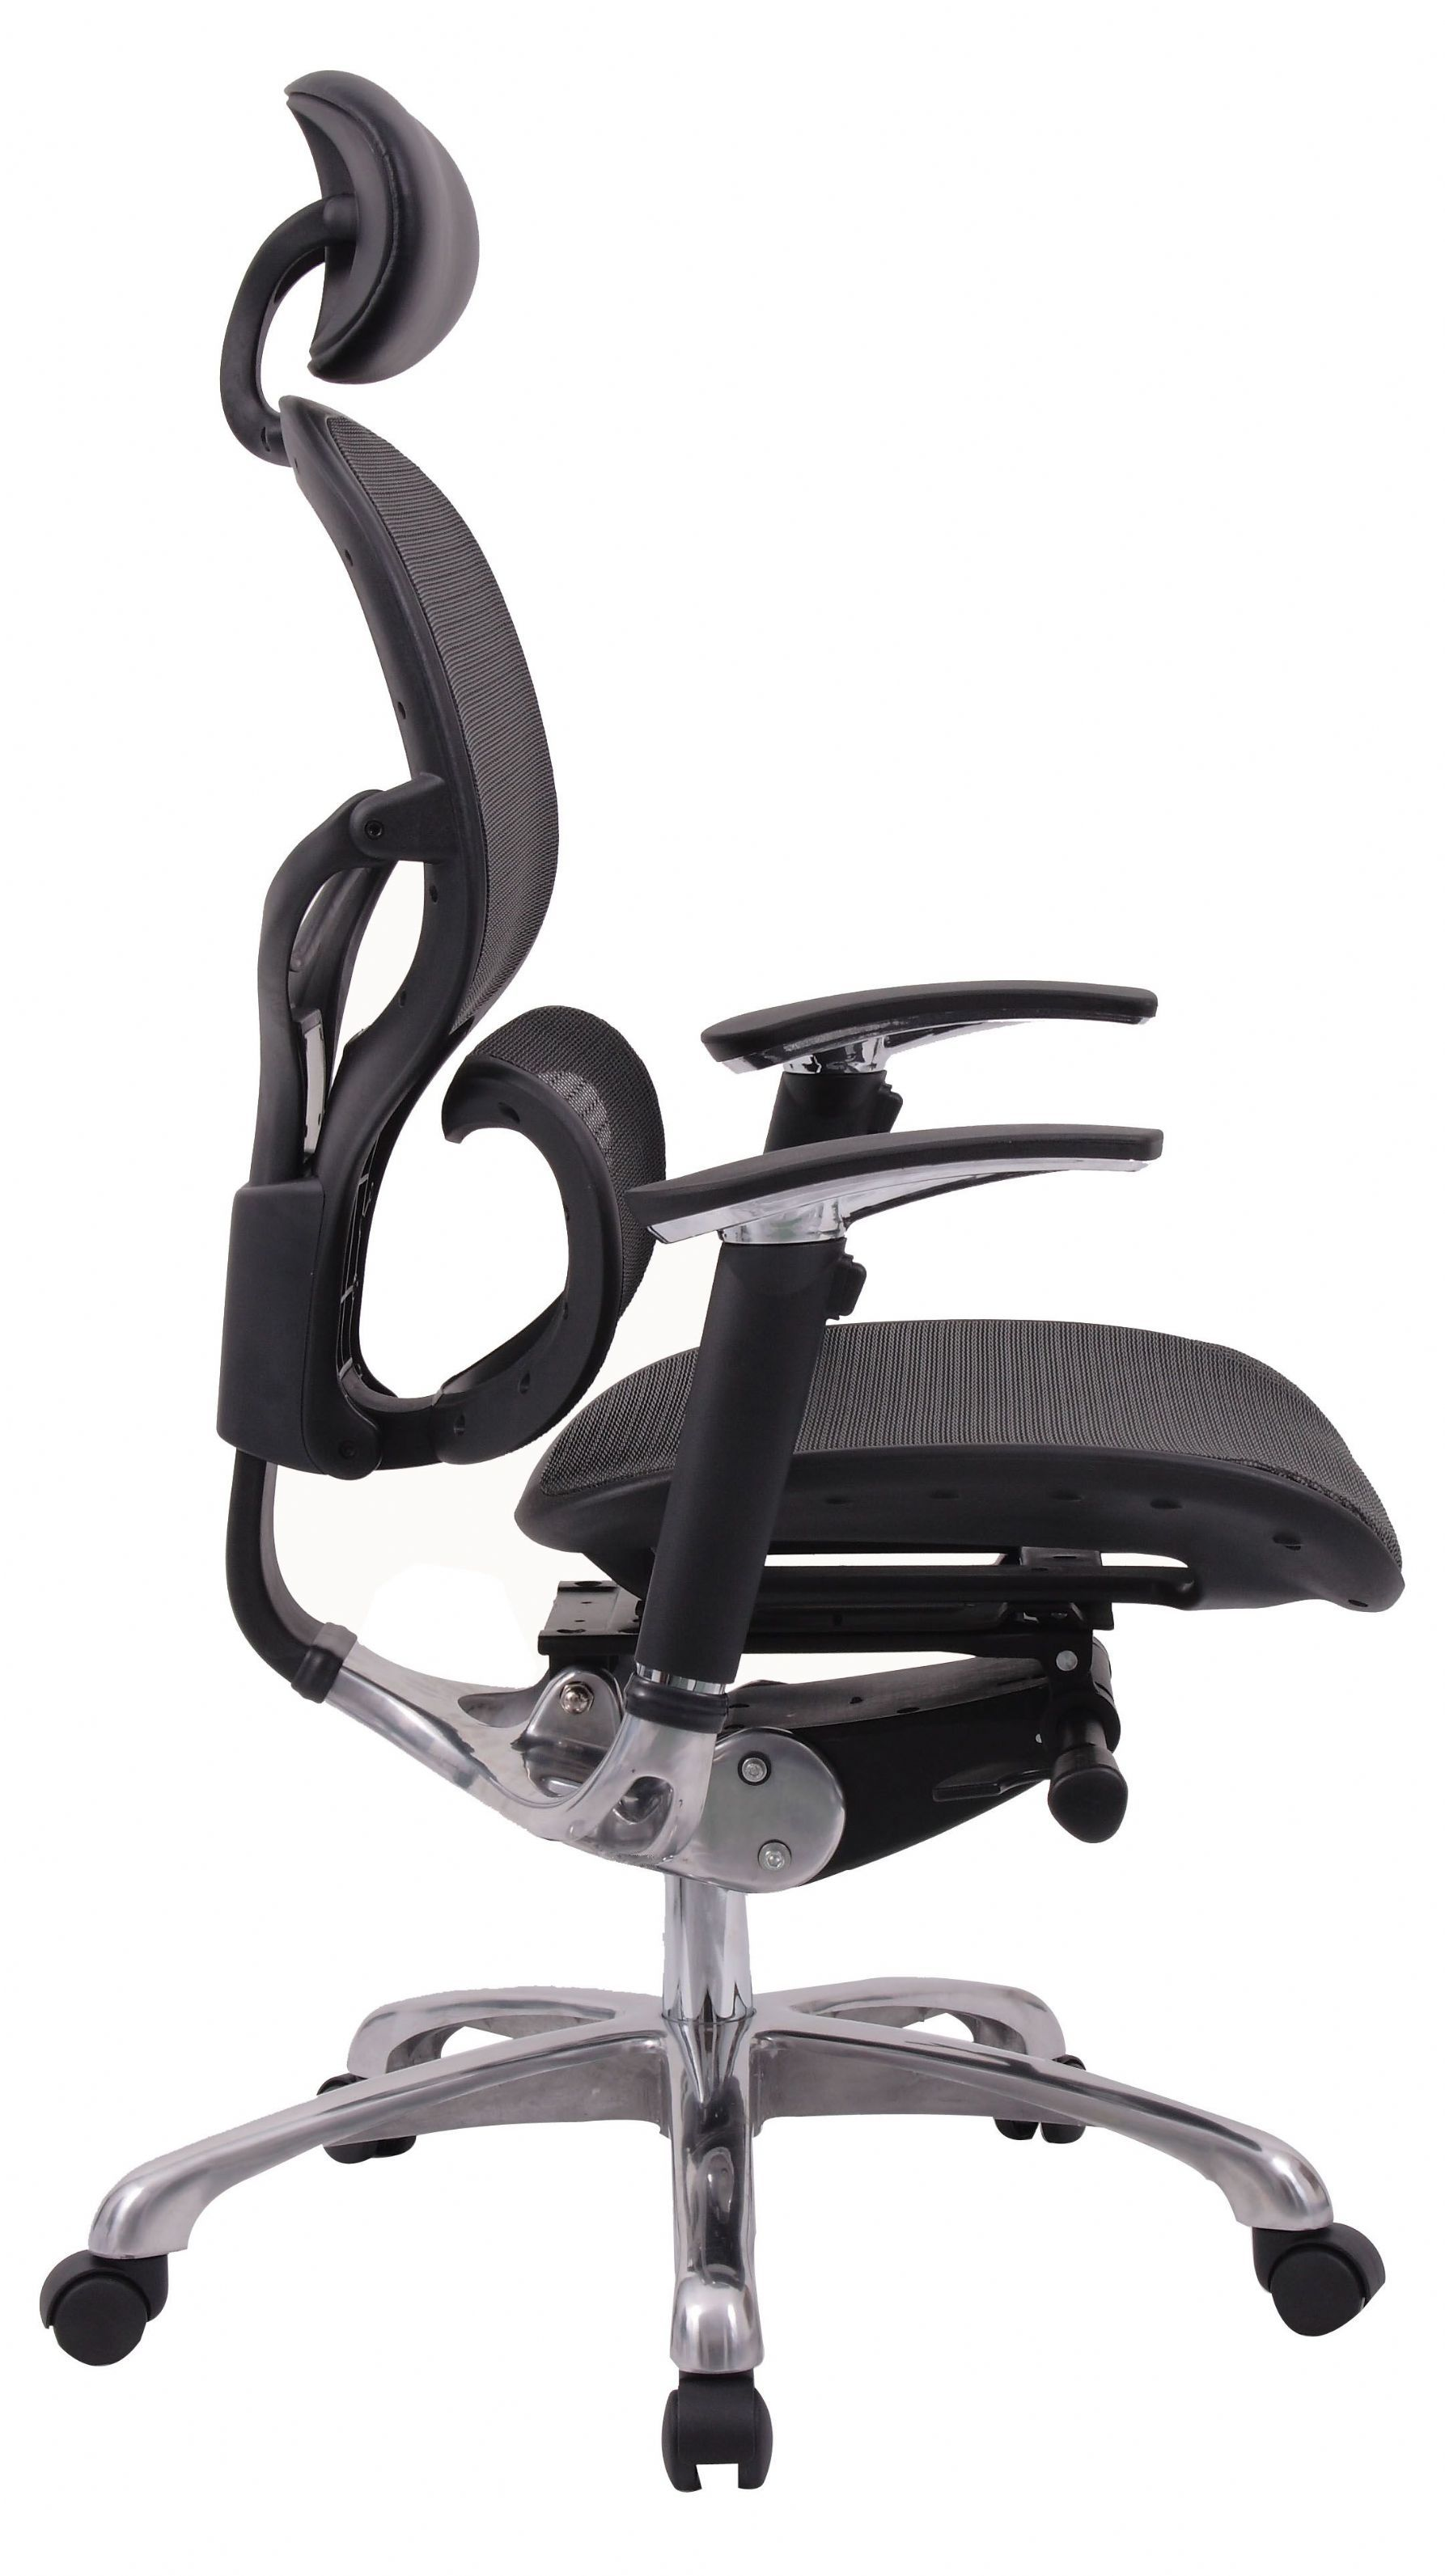 Best Ergonomic Office Chair Ergonomic Office Chair With Lumbar Support Full Image For Office